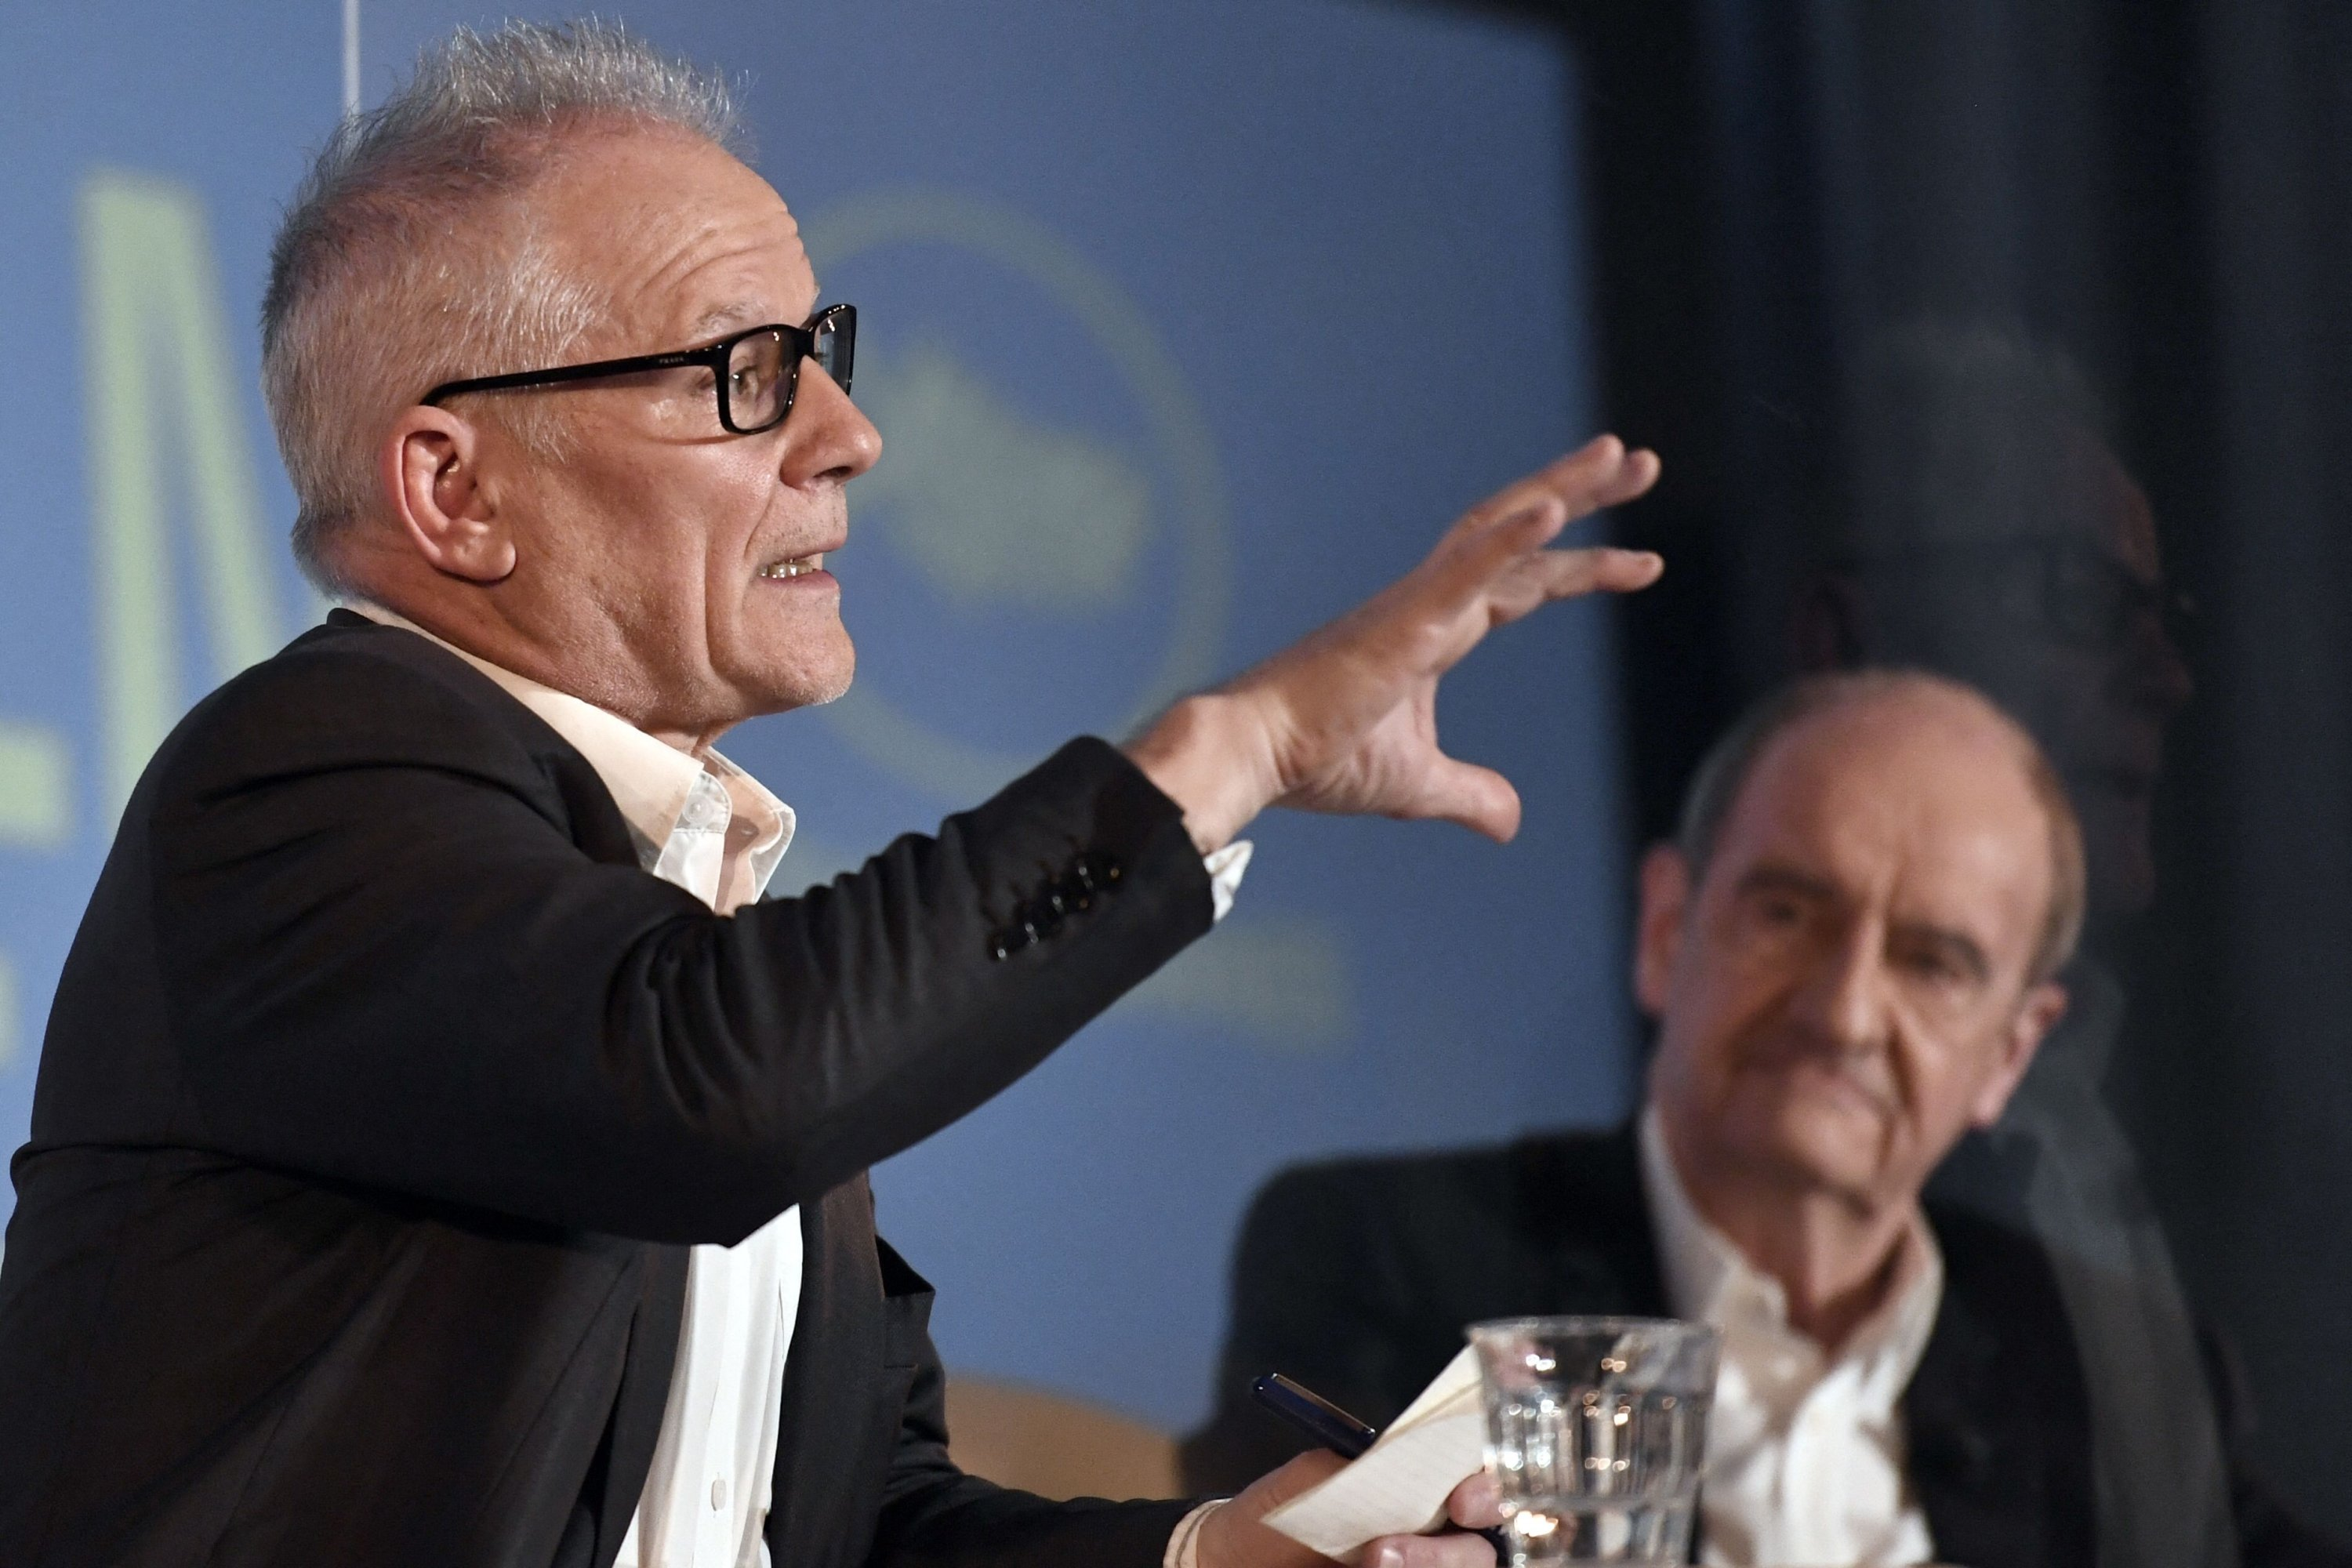 Cannes film festival general delegate Thierry Fremaux (L) gestures while speaking at a press conference to announce the official selection of films of the 74th Cannes Film Festival with French director of the festival Pierre Lescure listening in the background, Paris, France, June 3, 2021. (AFP Photo)